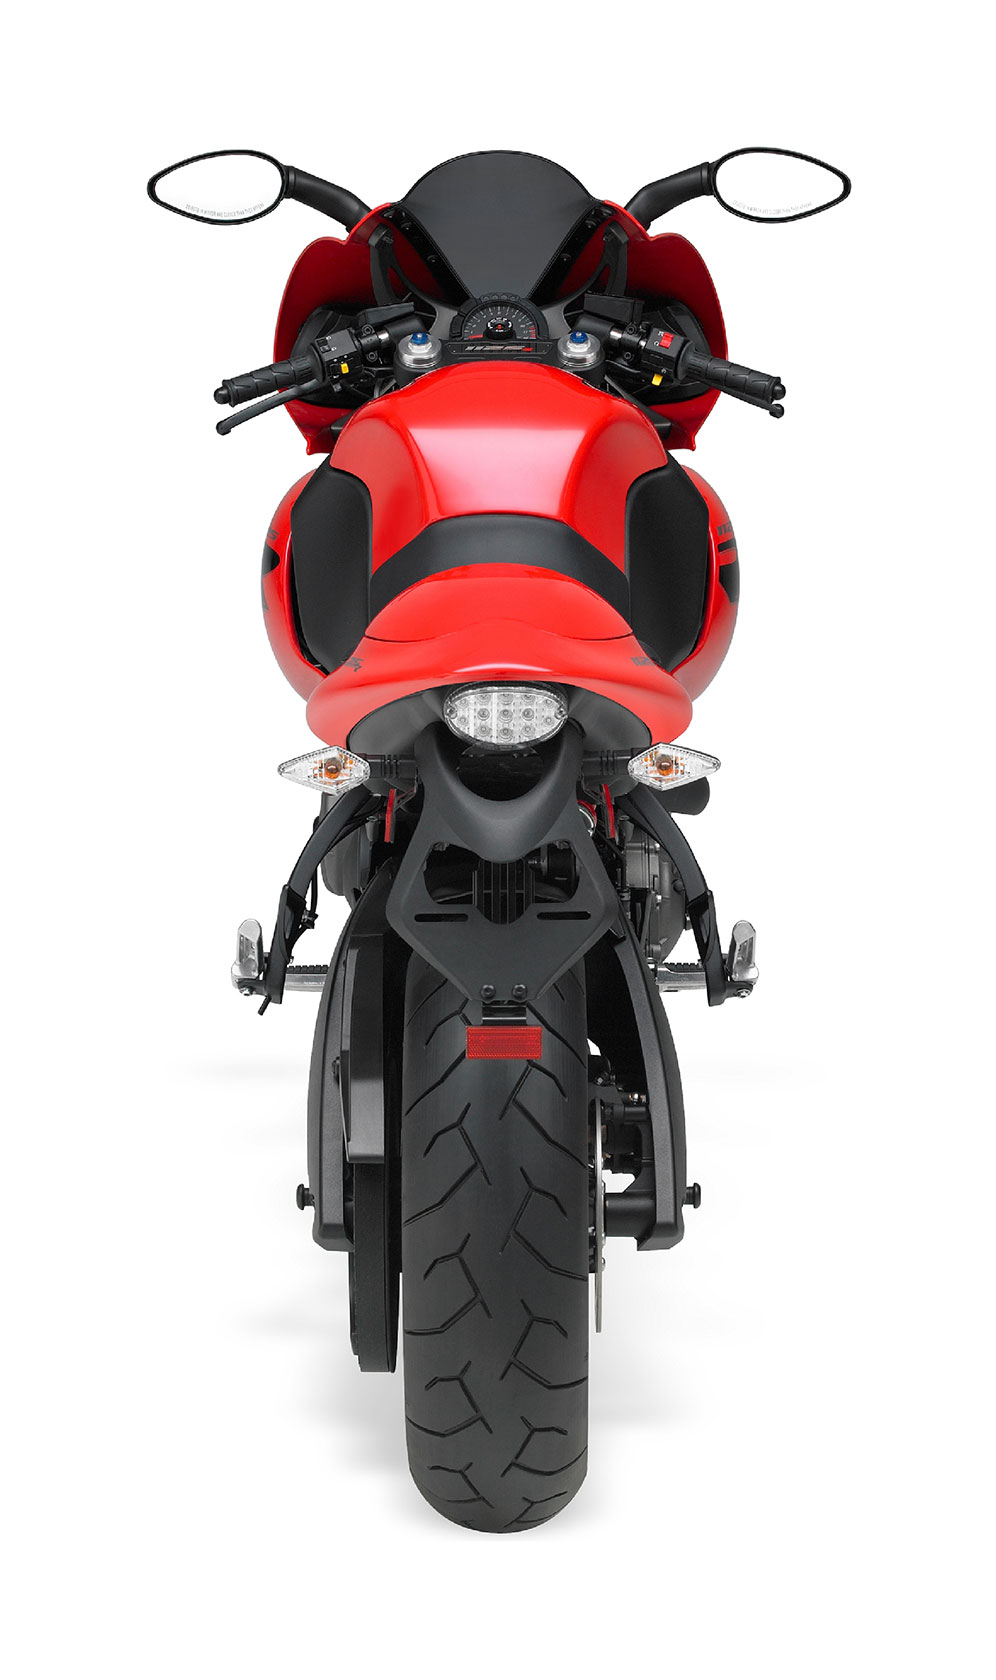 Buell 1125 R 2010 images #66454